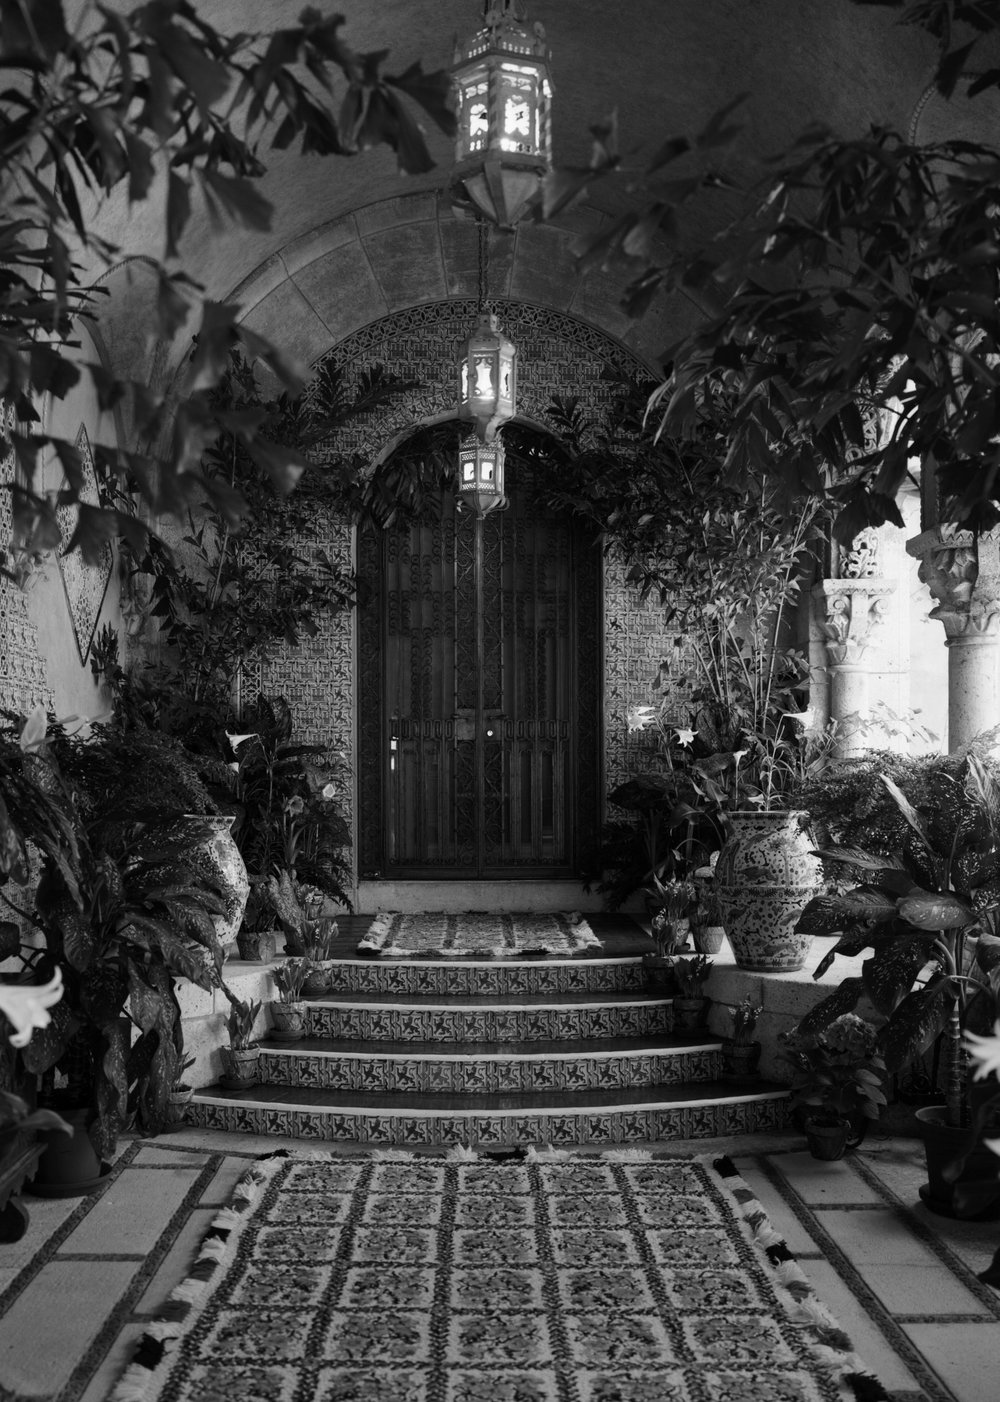 Entrance to owner's suite, Mar-a-Lago, April 1967, Library of Congress.